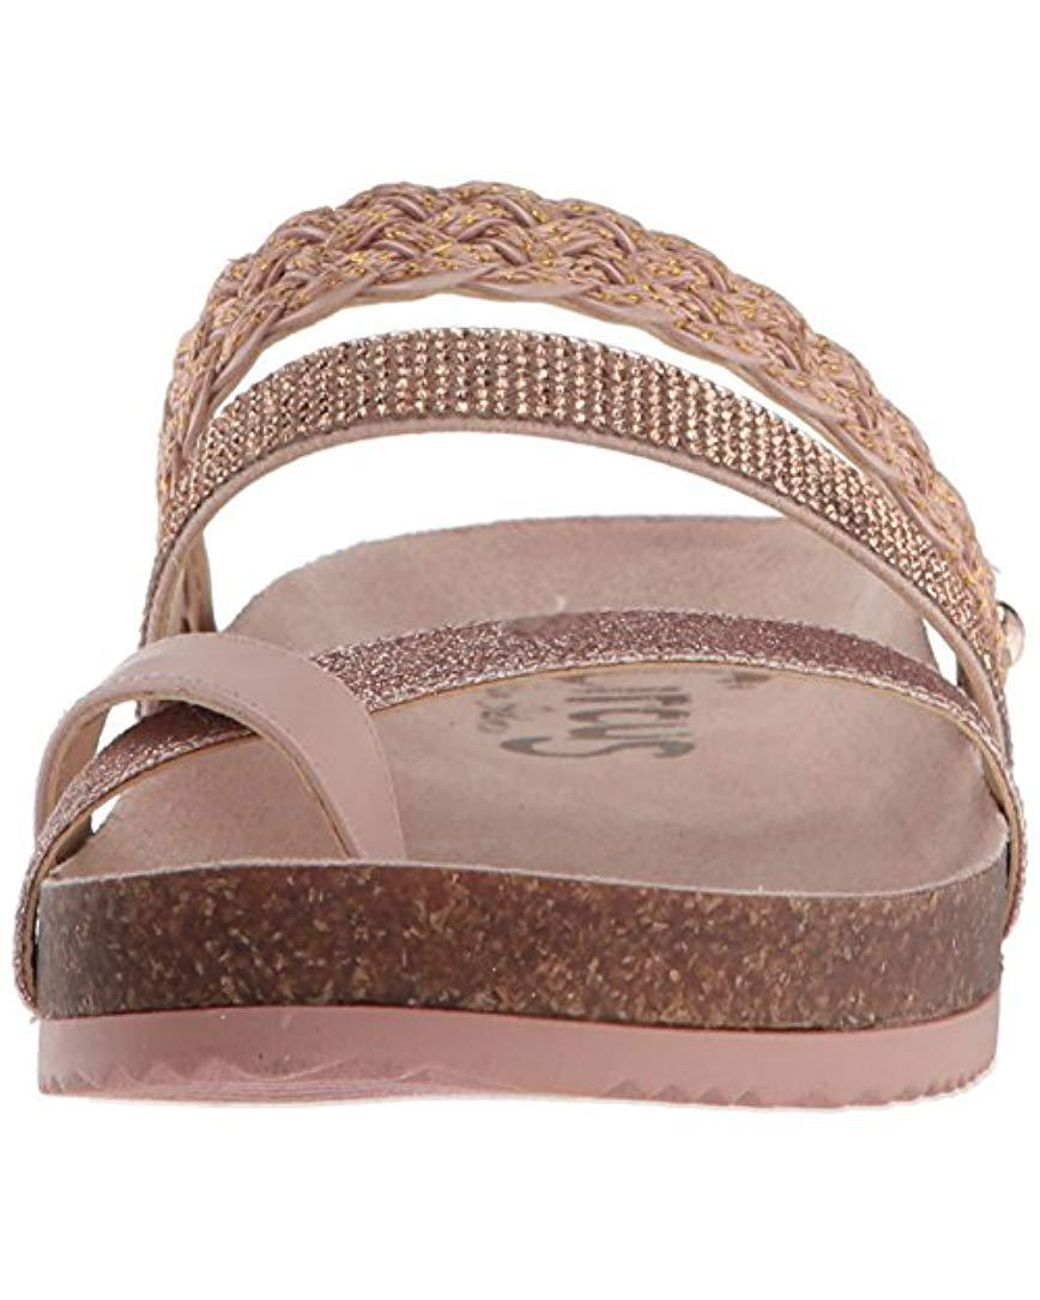 ee25cb3f7 Lyst - Circus by Sam Edelman Oakley Slide Sandal in Pink - Save 80%